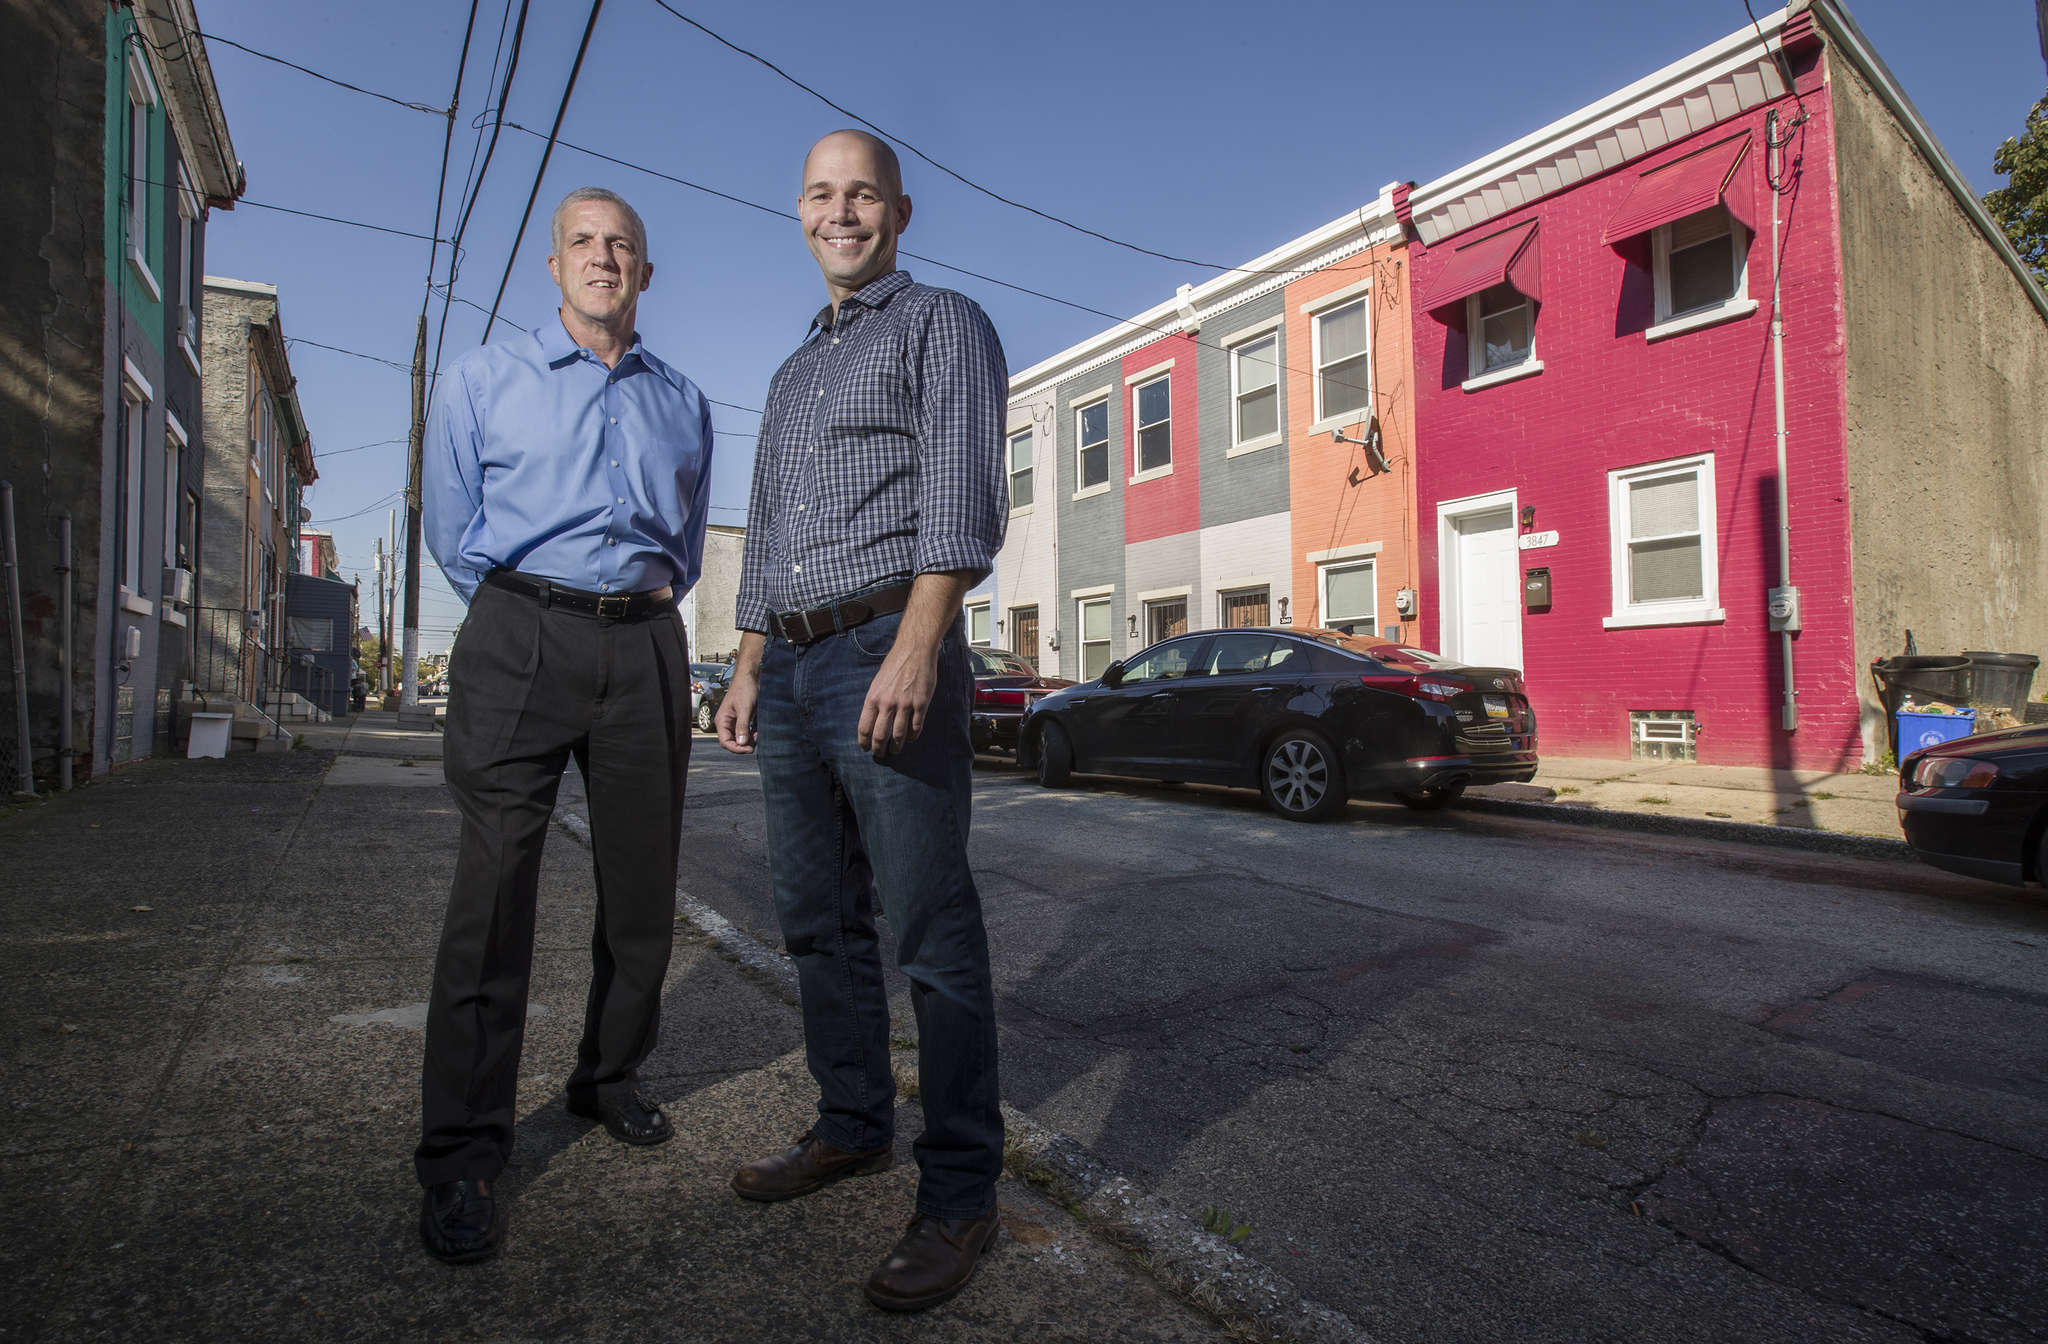 West Philadelphia Real Estate´s James Levin (left) and George Bantel on Melon Street.